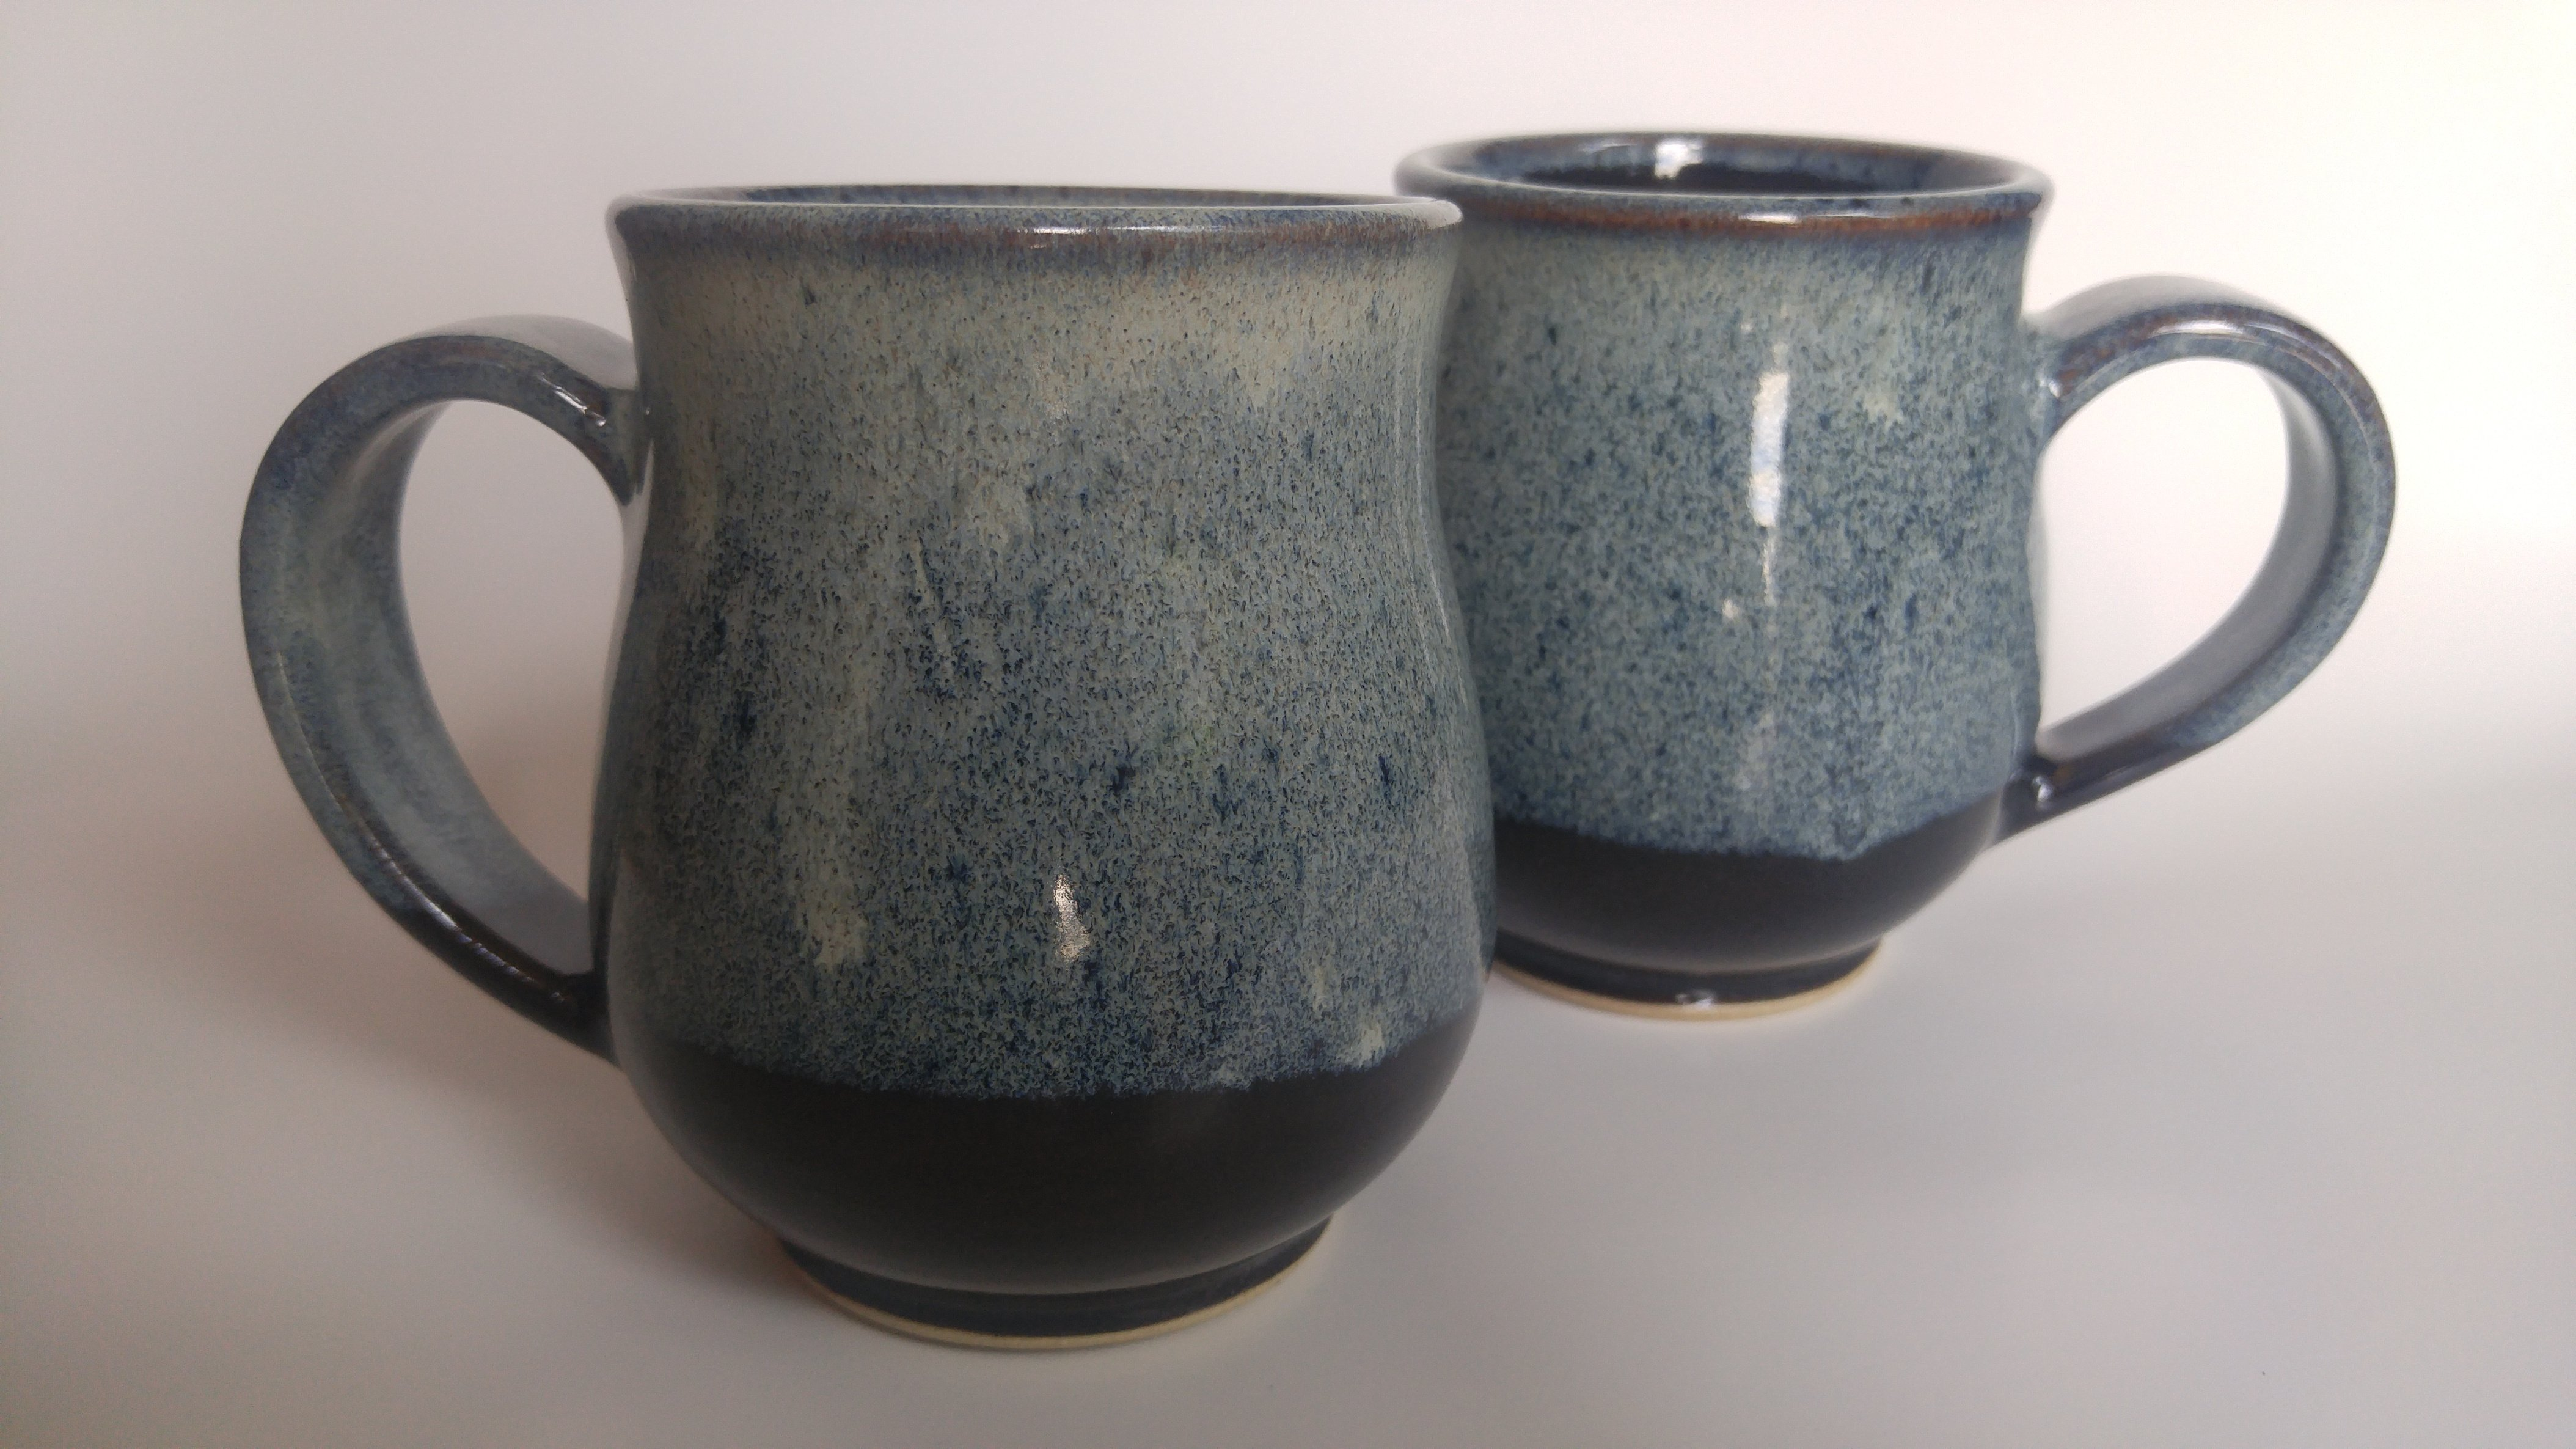 https://0901.nccdn.net/4_2/000/000/071/260/Black-with-Matte-Blue-Mugs-4216x2371.jpg